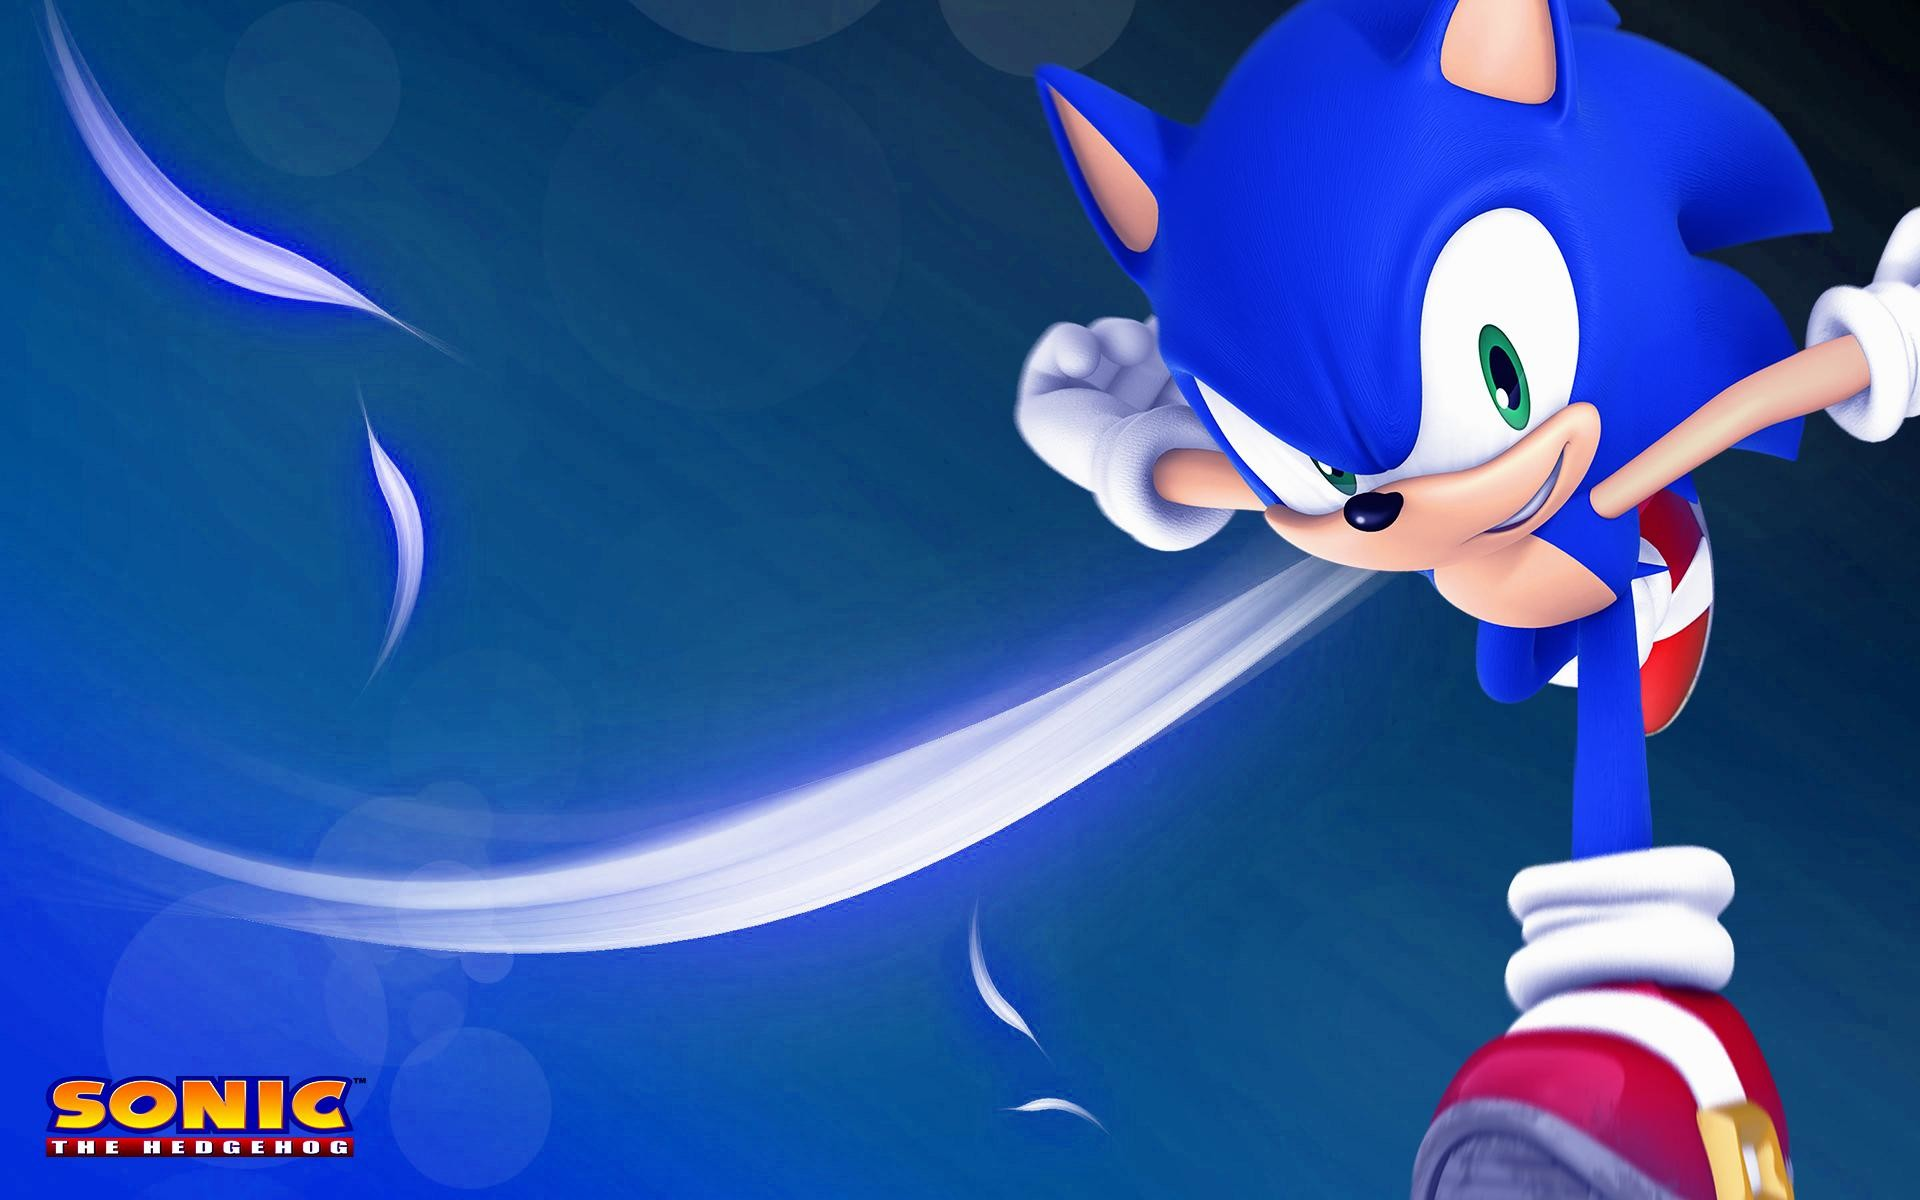 Sonic-wallpapers-HD-image